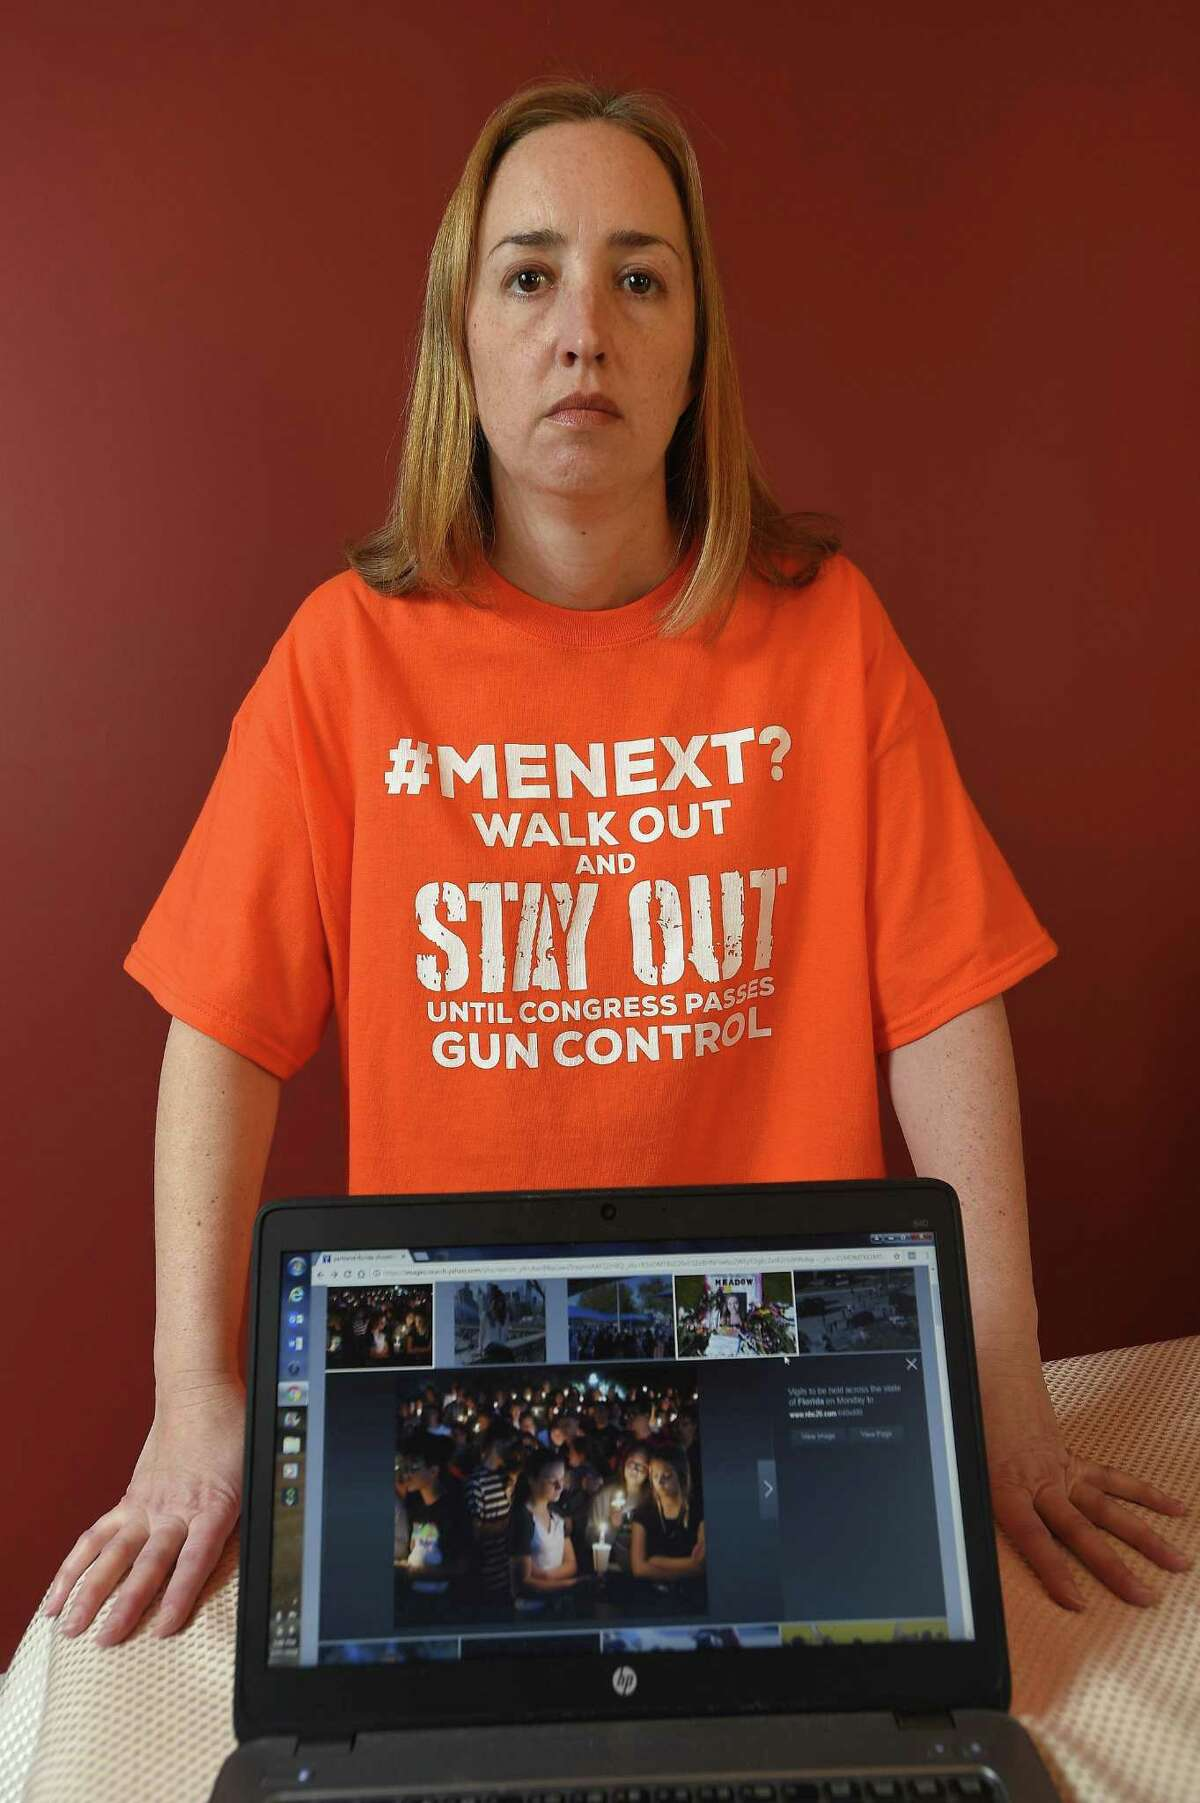 Jennifer Ladd teaches history at Darien High School and will walk out of her job on the Day of Action, April 20, 2018, if the U.S. Congress has not passed an assault weapon ban by then.Ms. Ladd is photographed on Tuesday, Feb. 27, 2018 in Stamford, Connecticut.